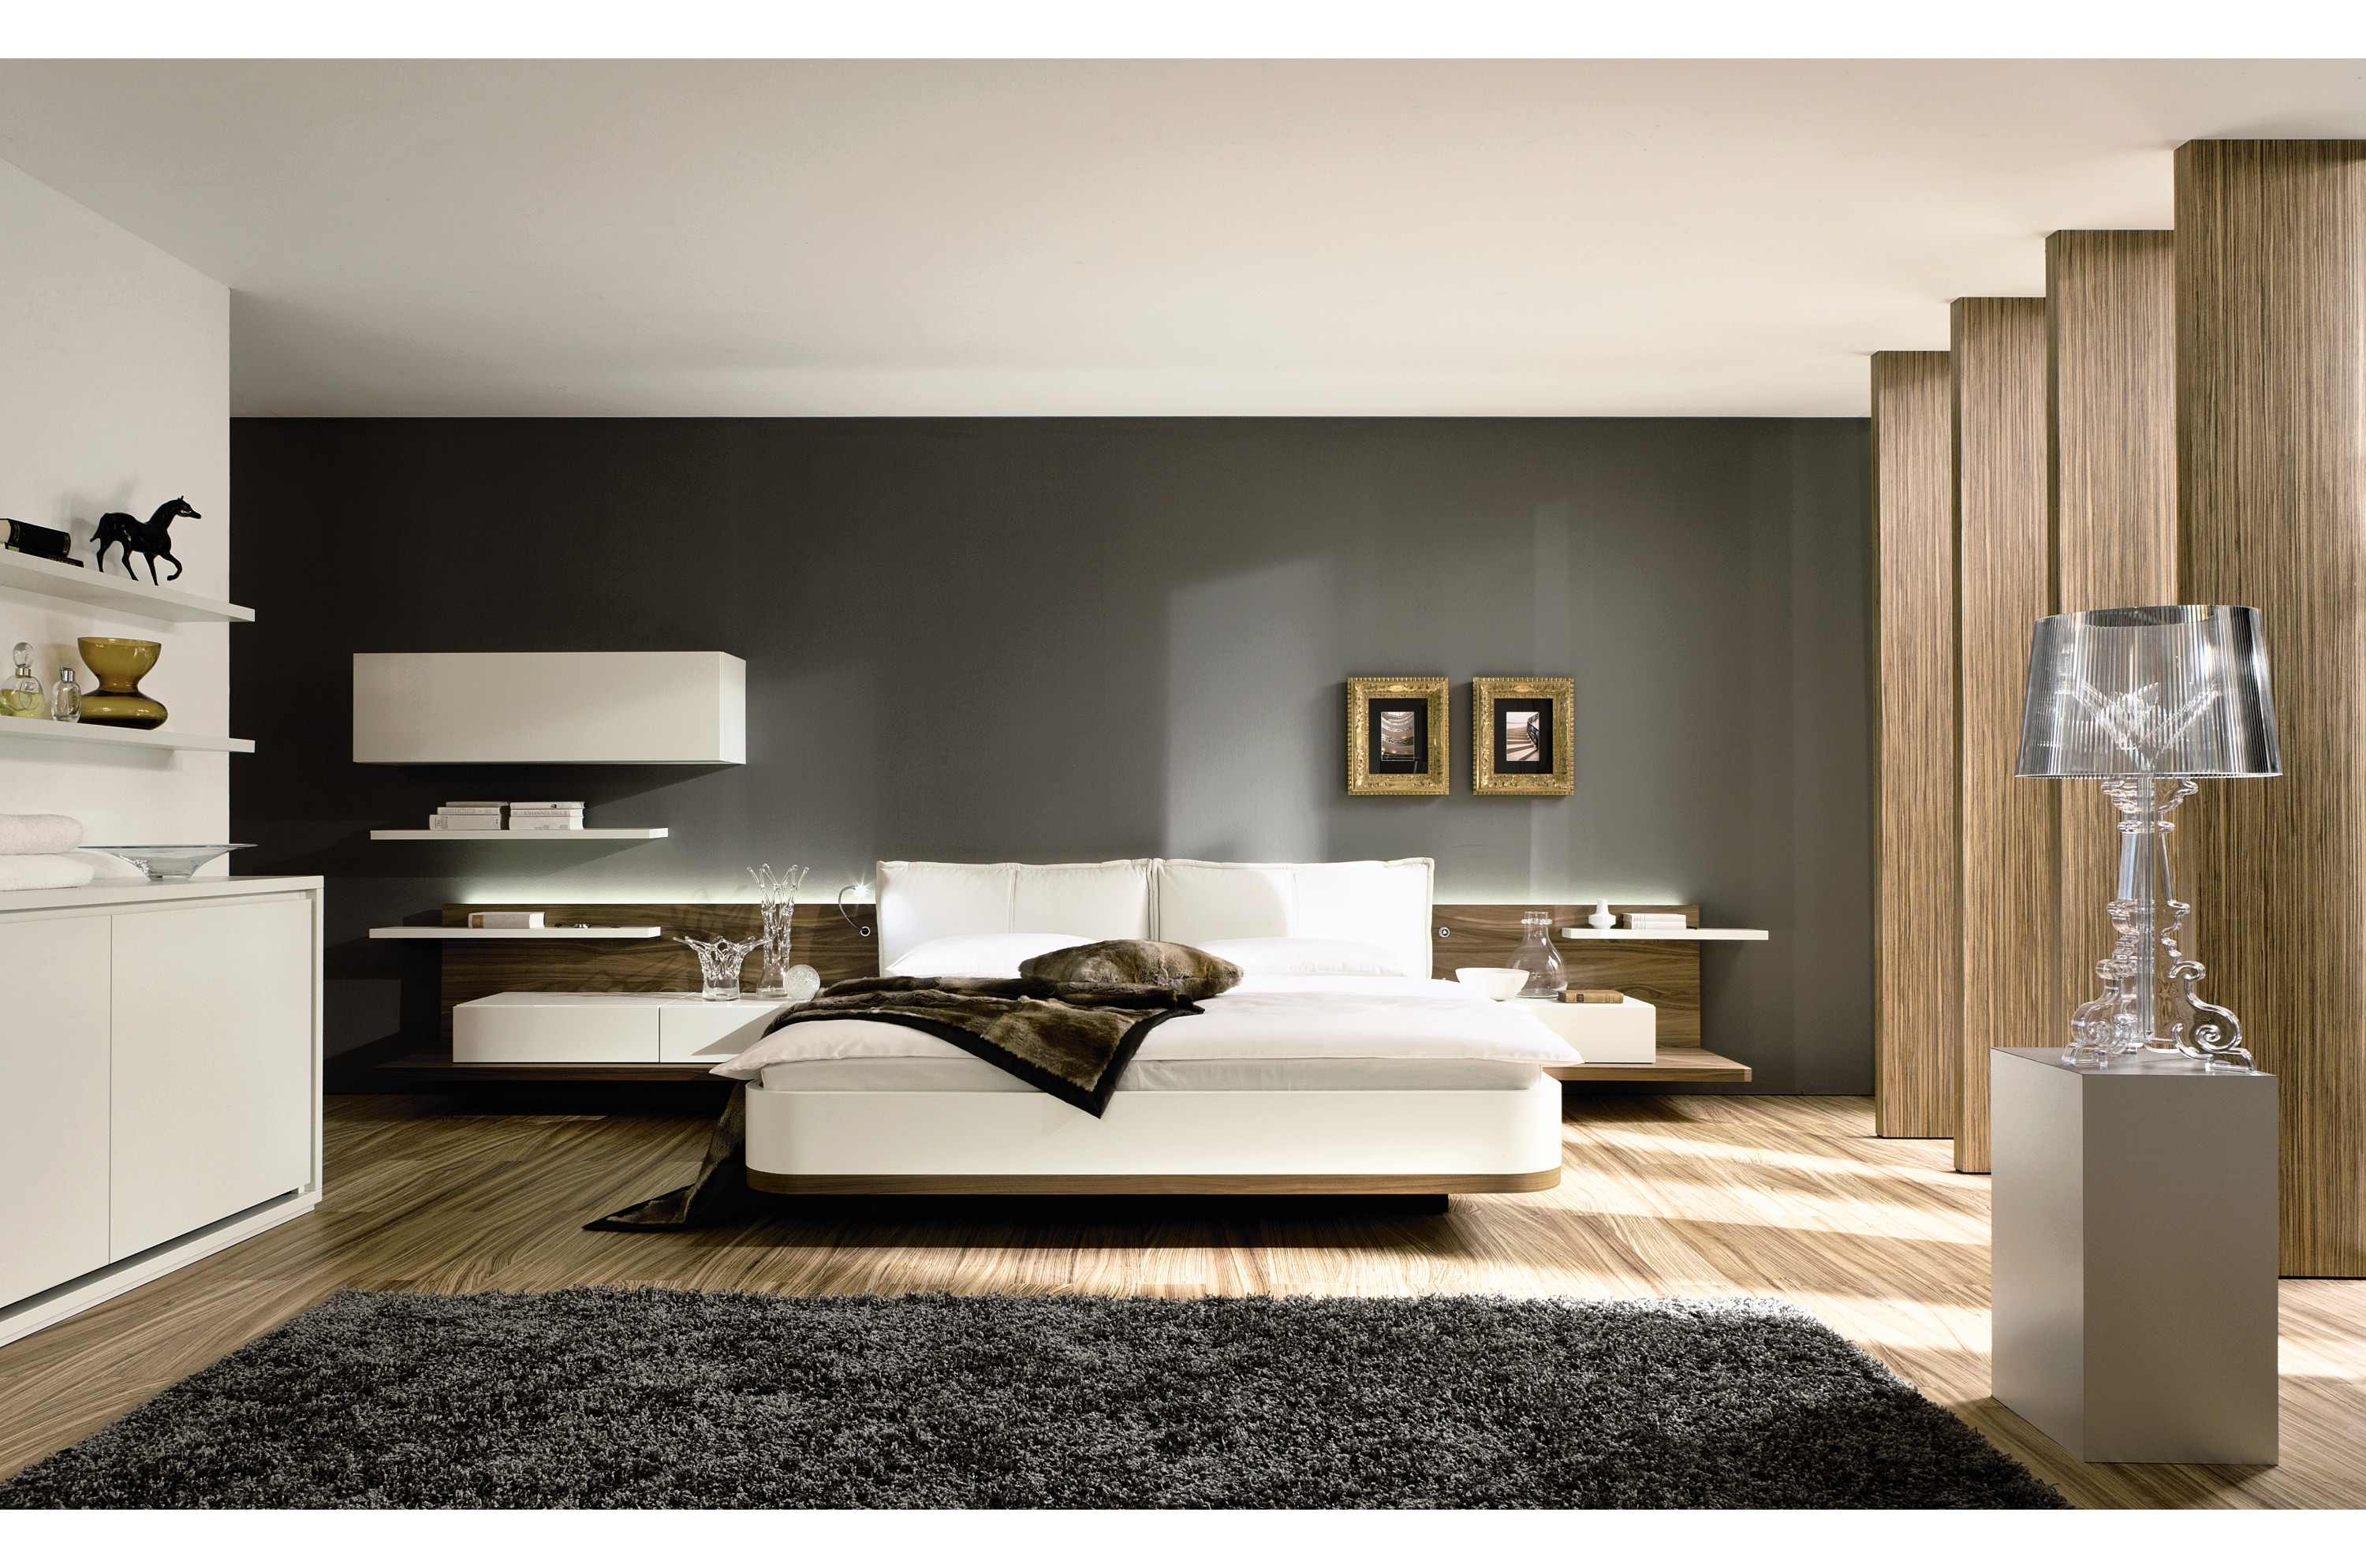 Modern bedroom innovation bedroom ideas interior design for Bedroom designs ideas modern